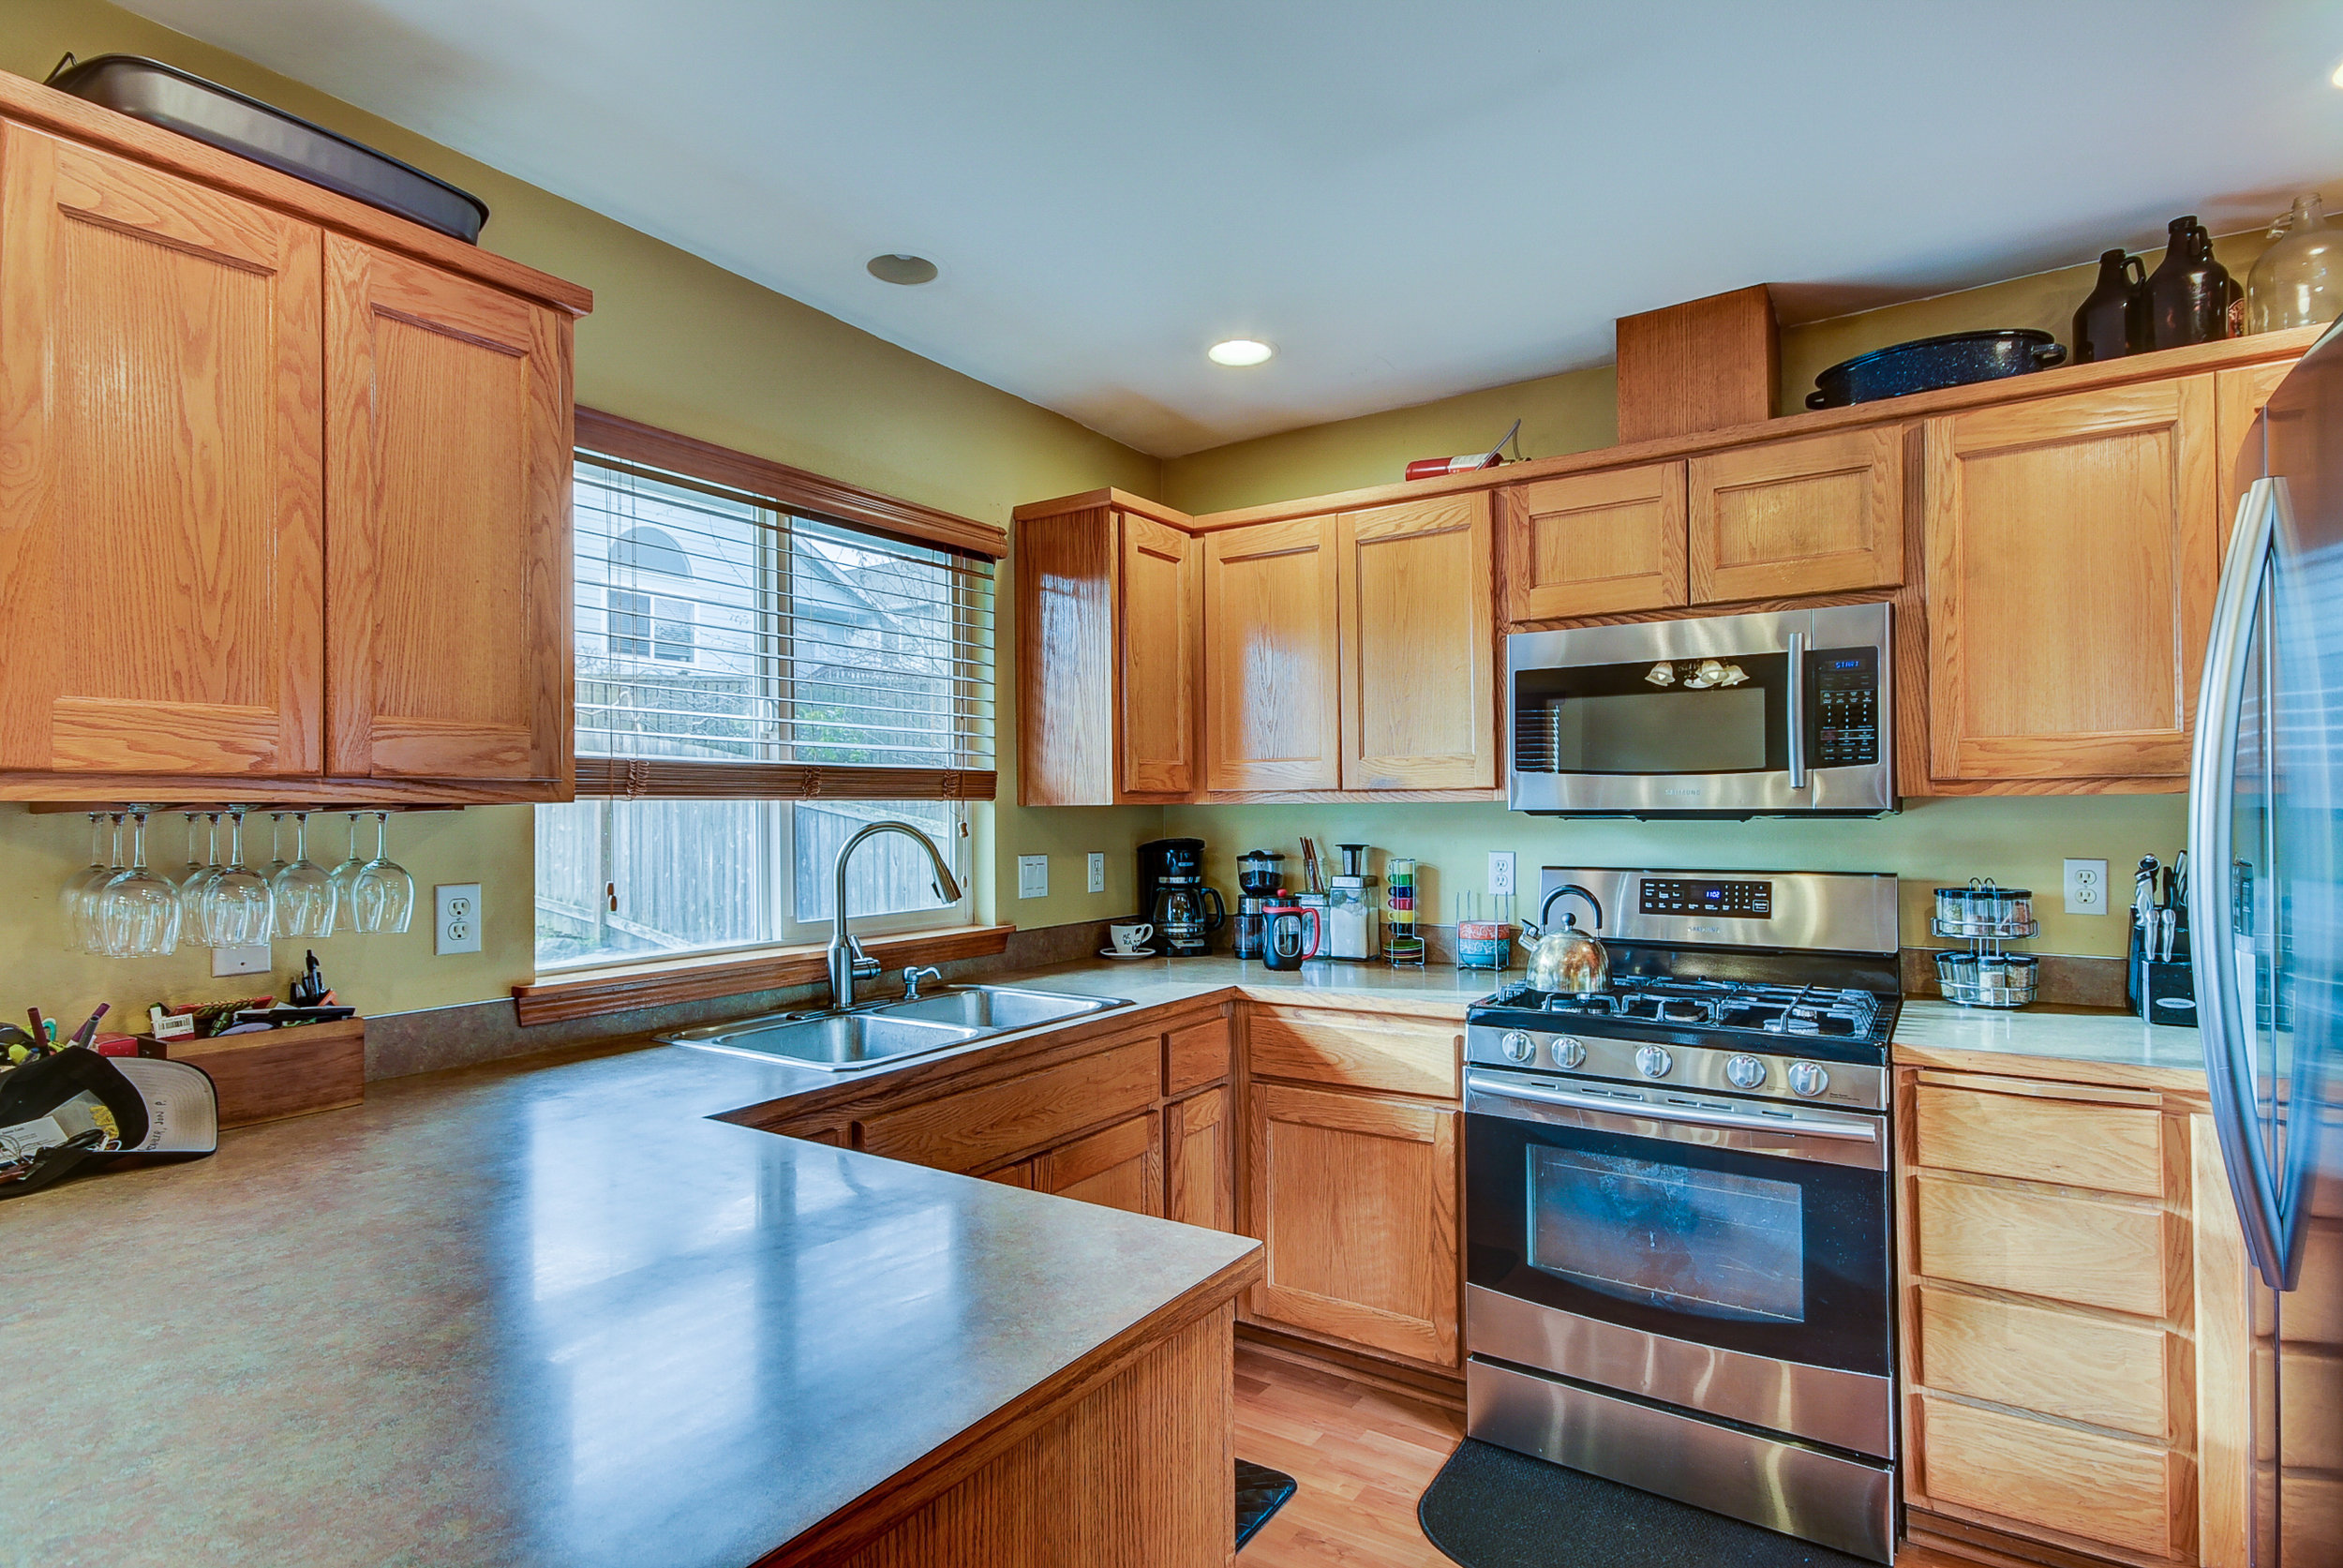 With abundant counter-top & cabinet space, newer stainless steel appliances, recessed lighting, & a breakfast bar....this kitchen has it all!